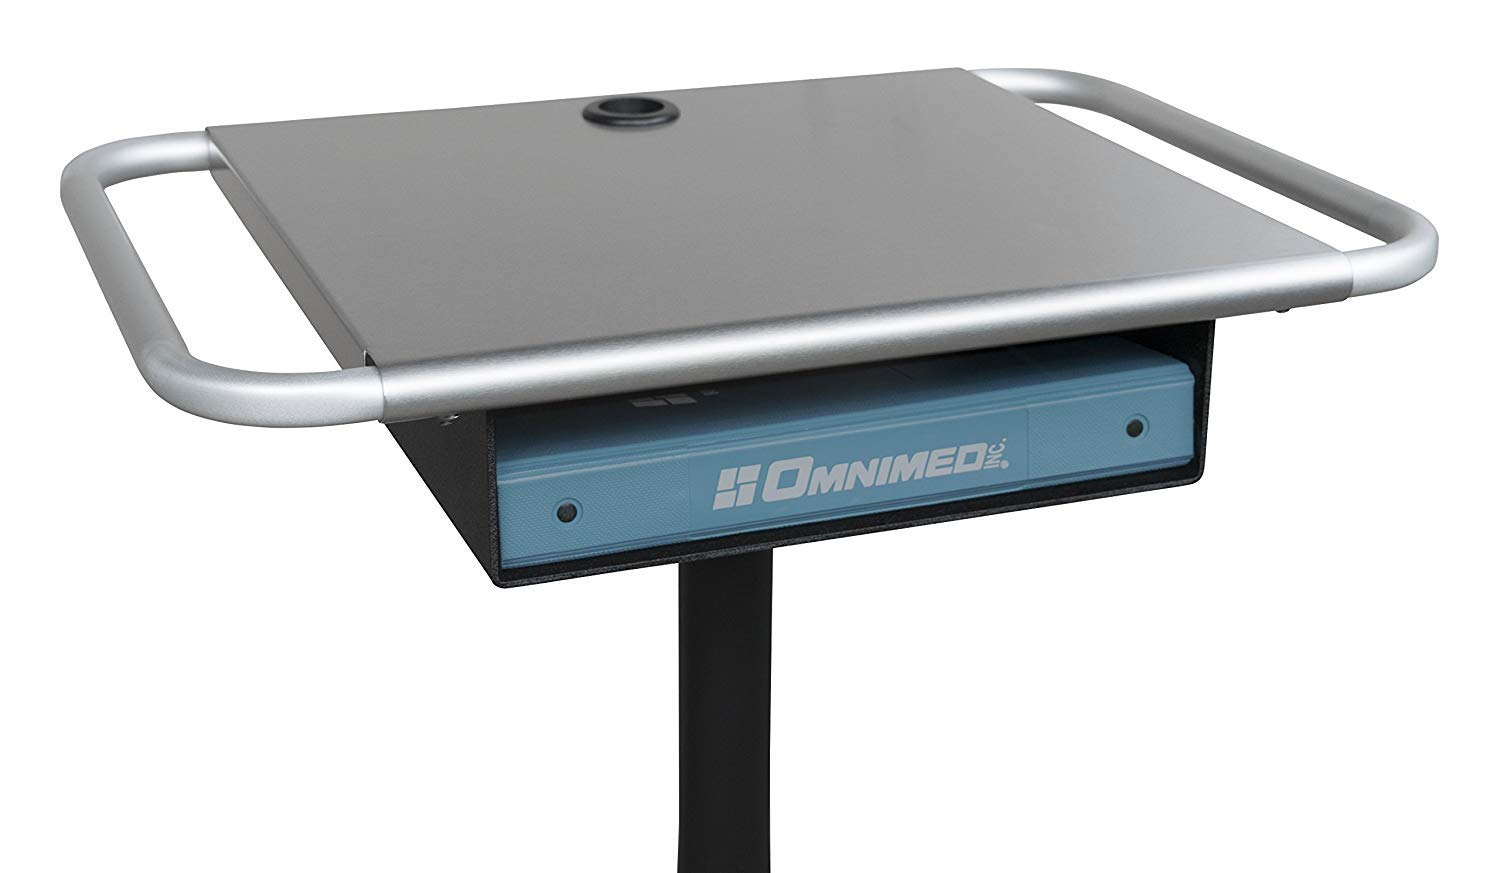 Omnimed 350305_EXT1 Laptop Stand with Storage Drawer by Omnimed (Image #3)